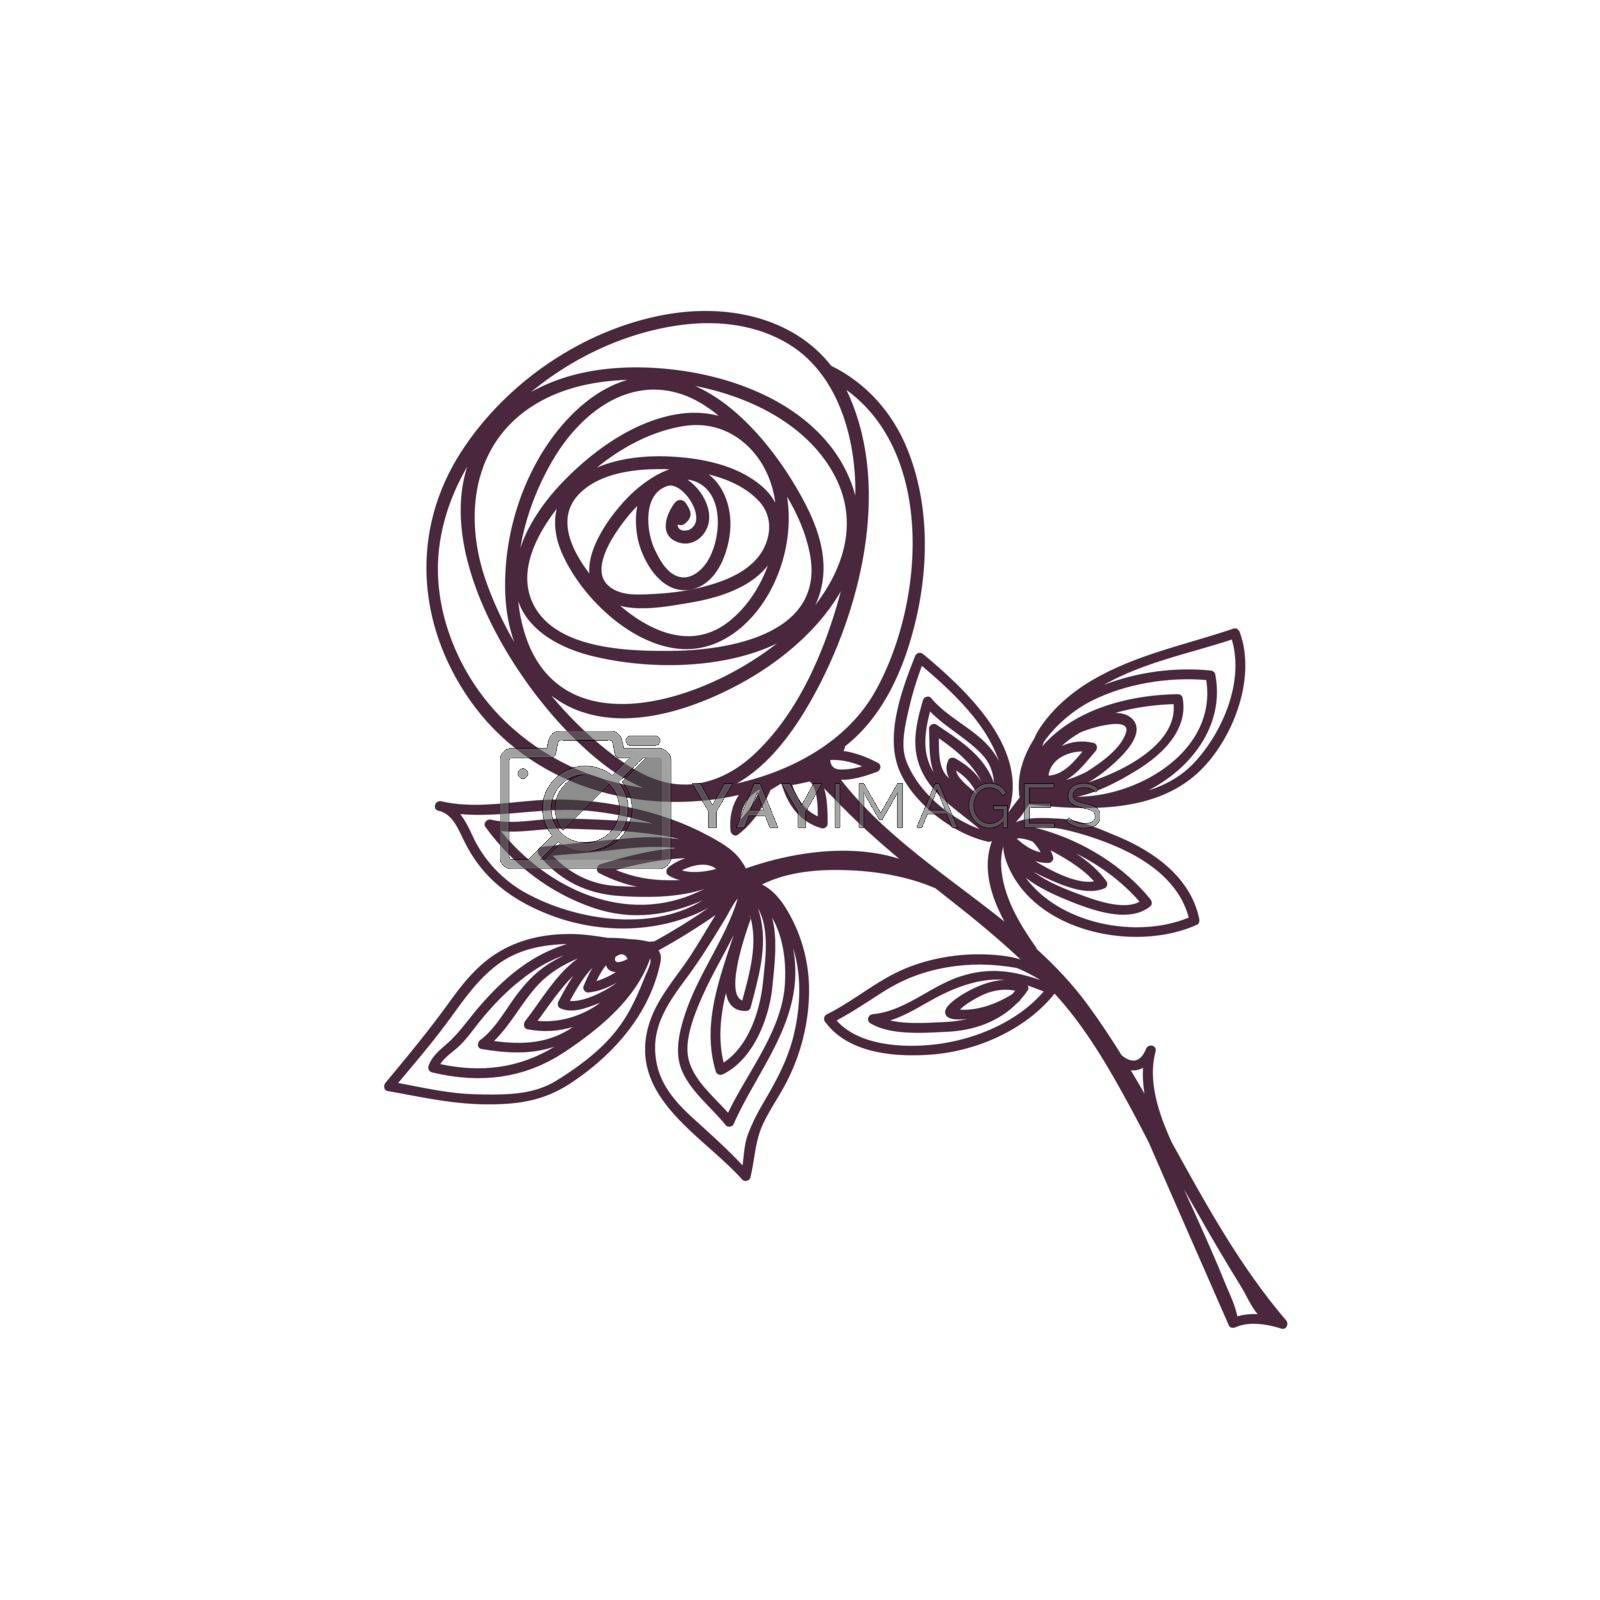 Rose. Stylized flower symbol. Outline hand drawing icon by ESSL